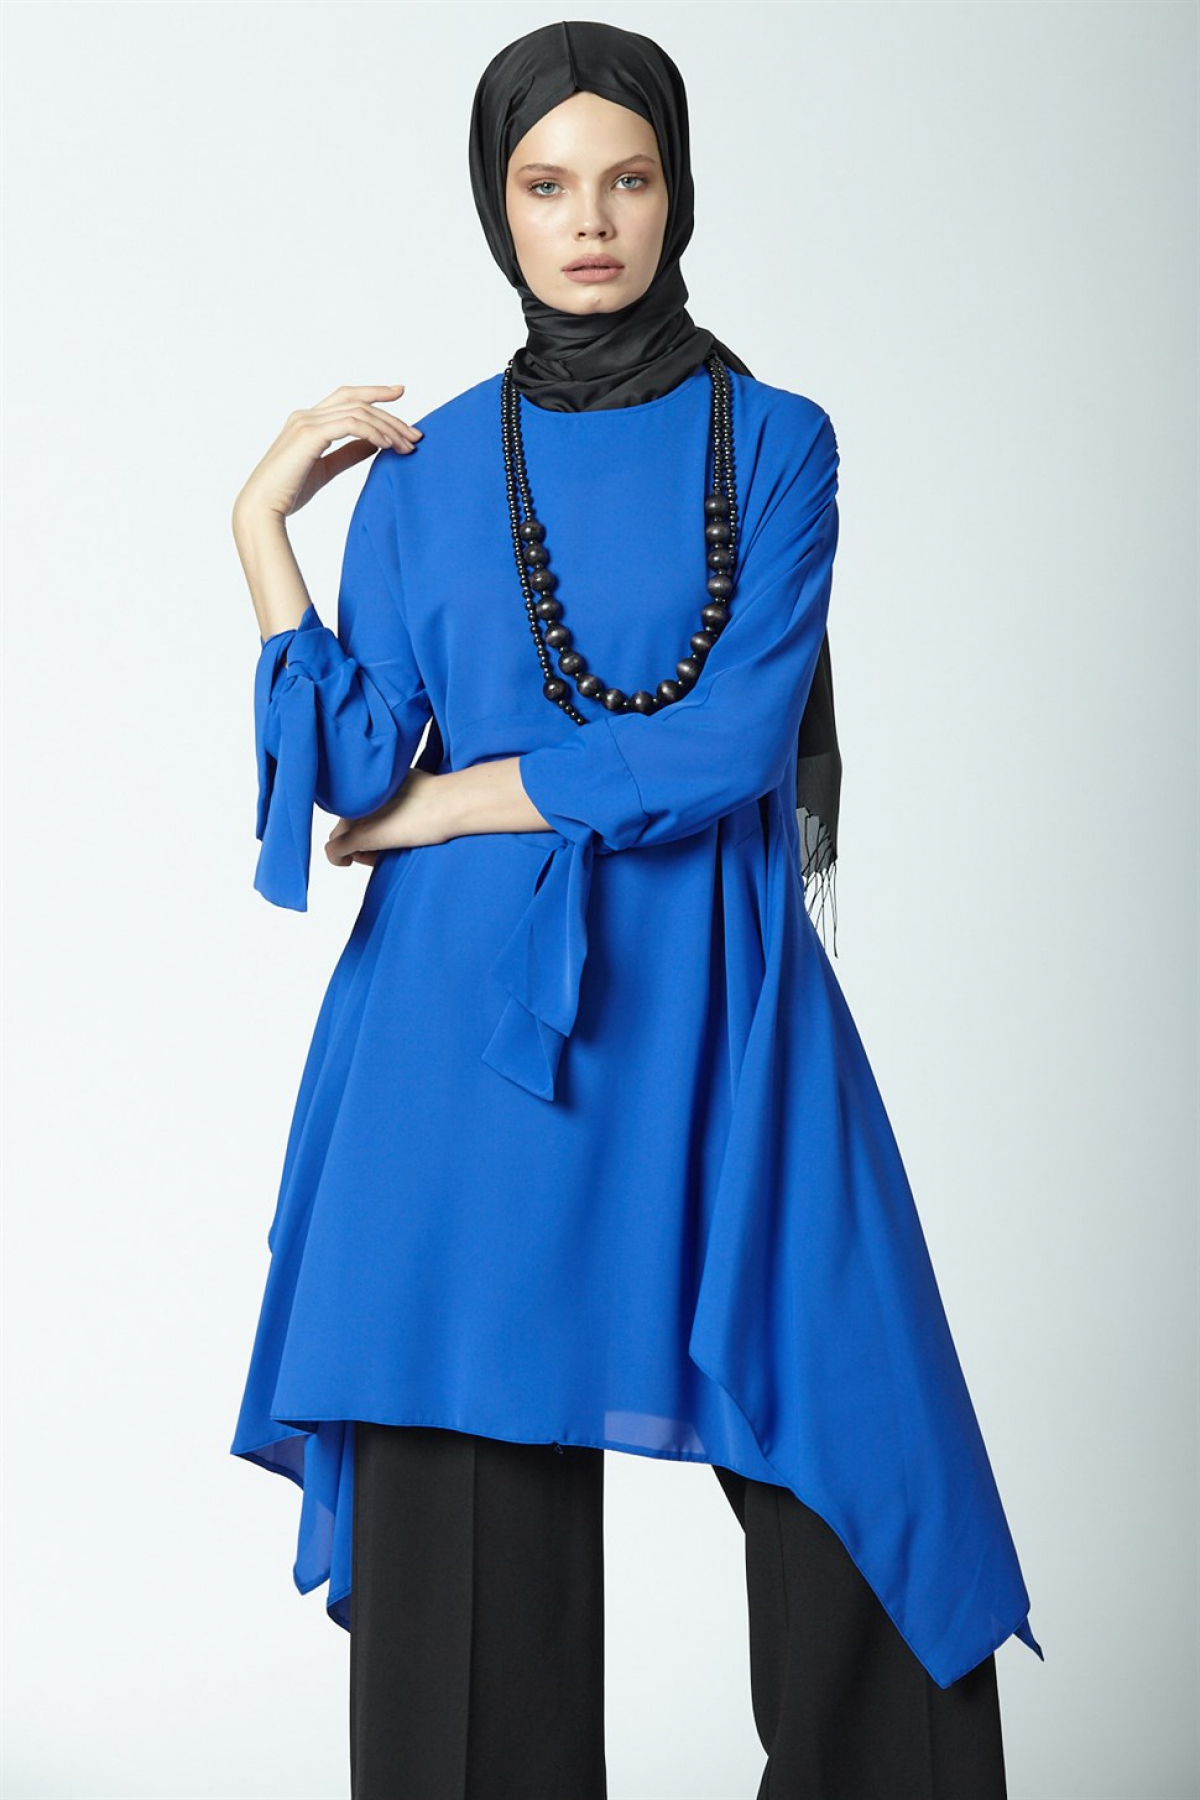 Armine Women's Tunic With a Necklace Accessory 9Y4732 Blue